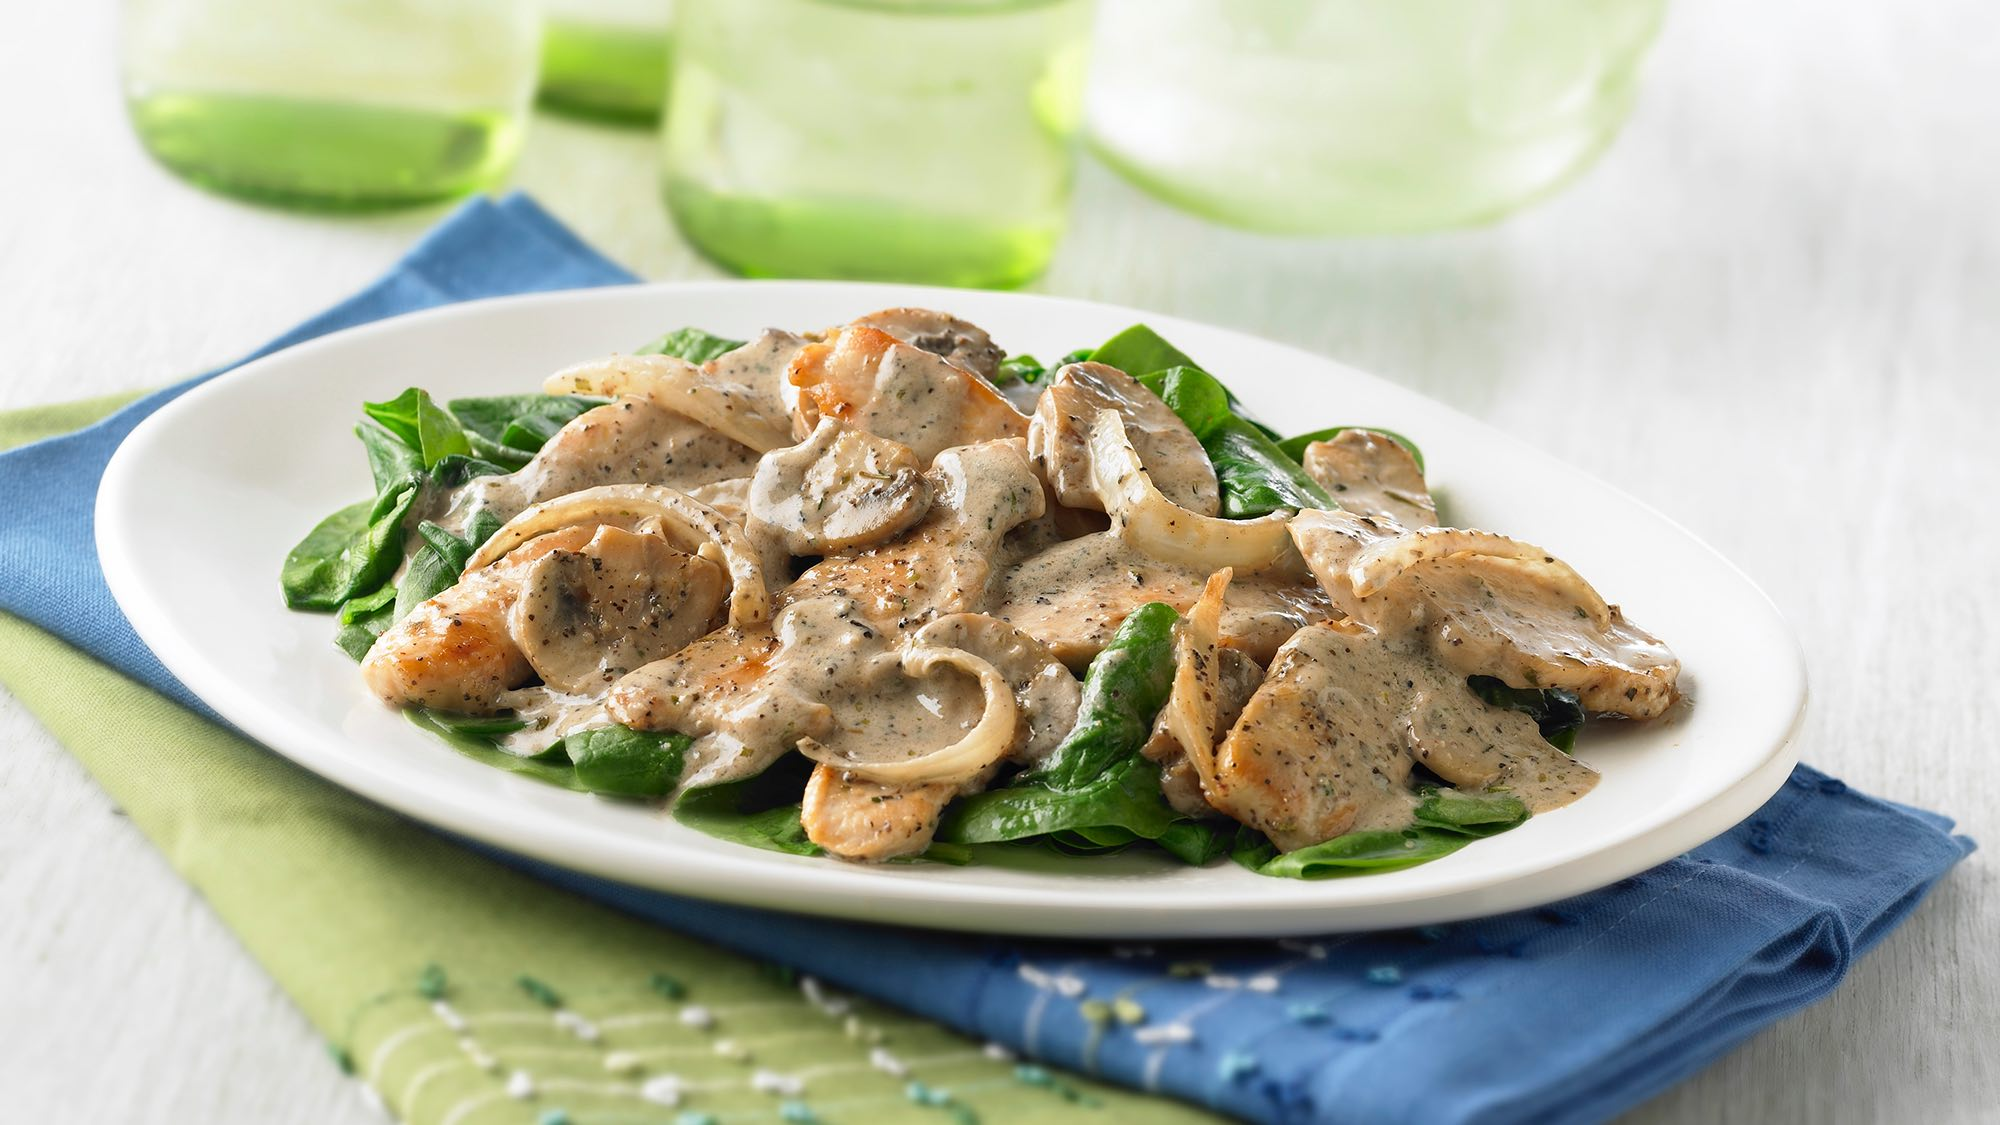 McCormick Creamy Peppered Chicken and Mushrooms